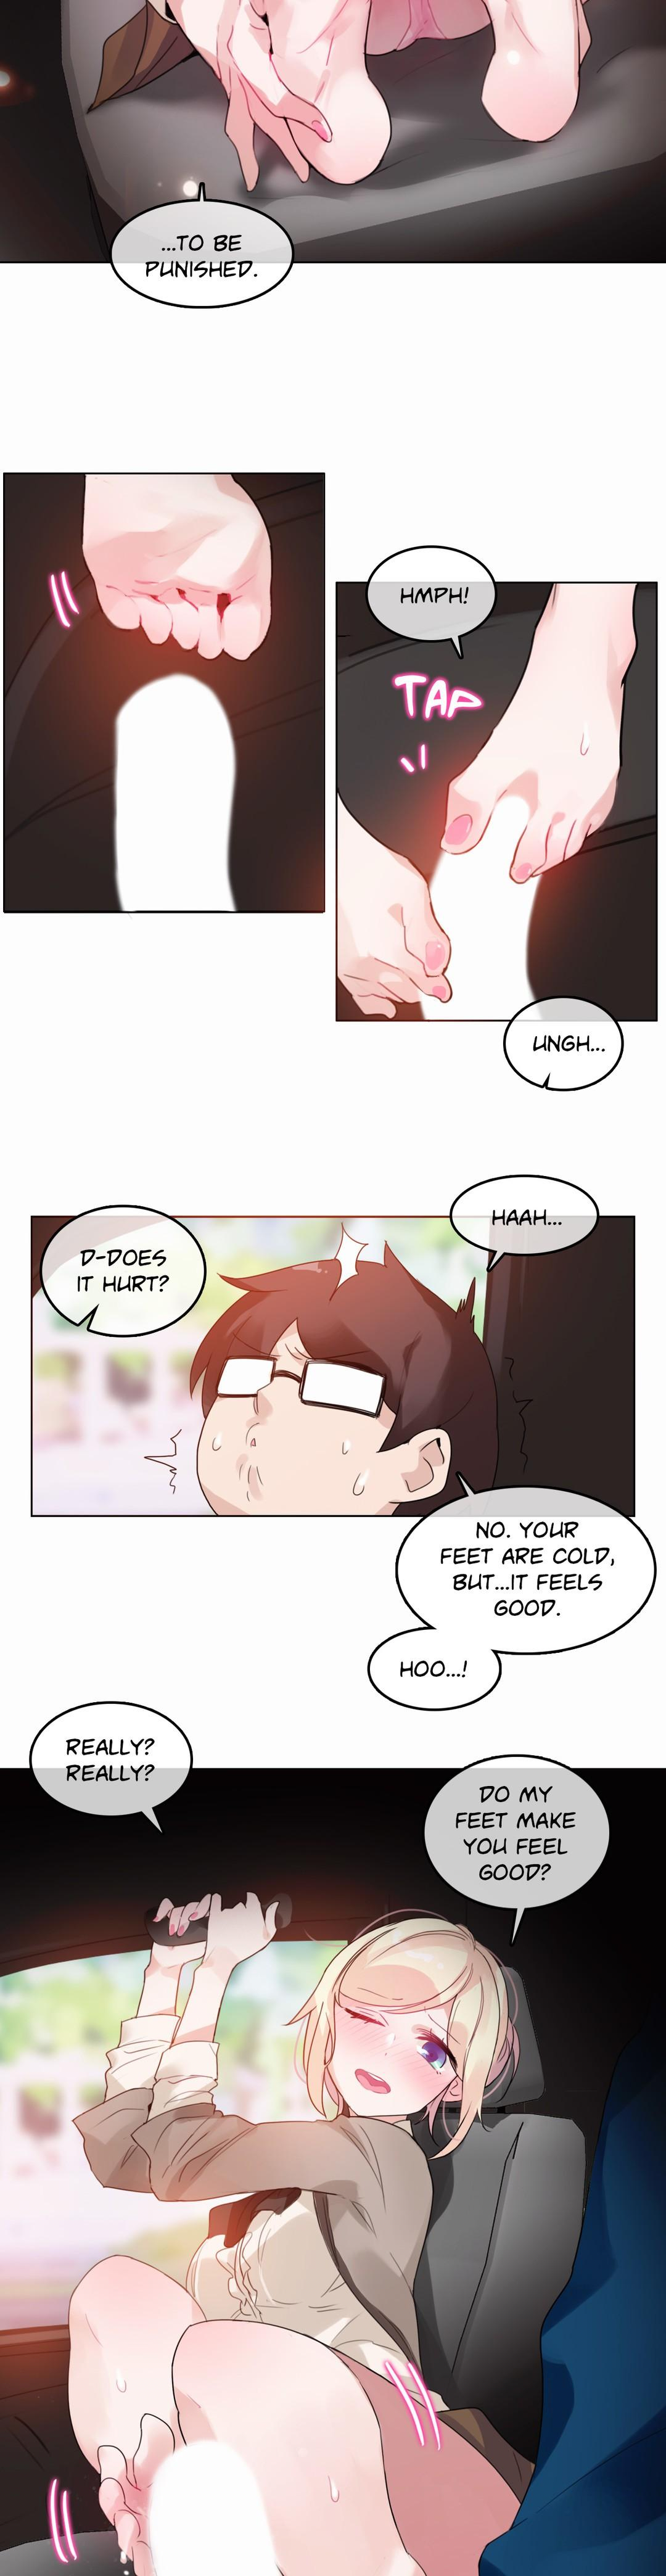 A Pervert's Daily Life Ch. 1-34 395